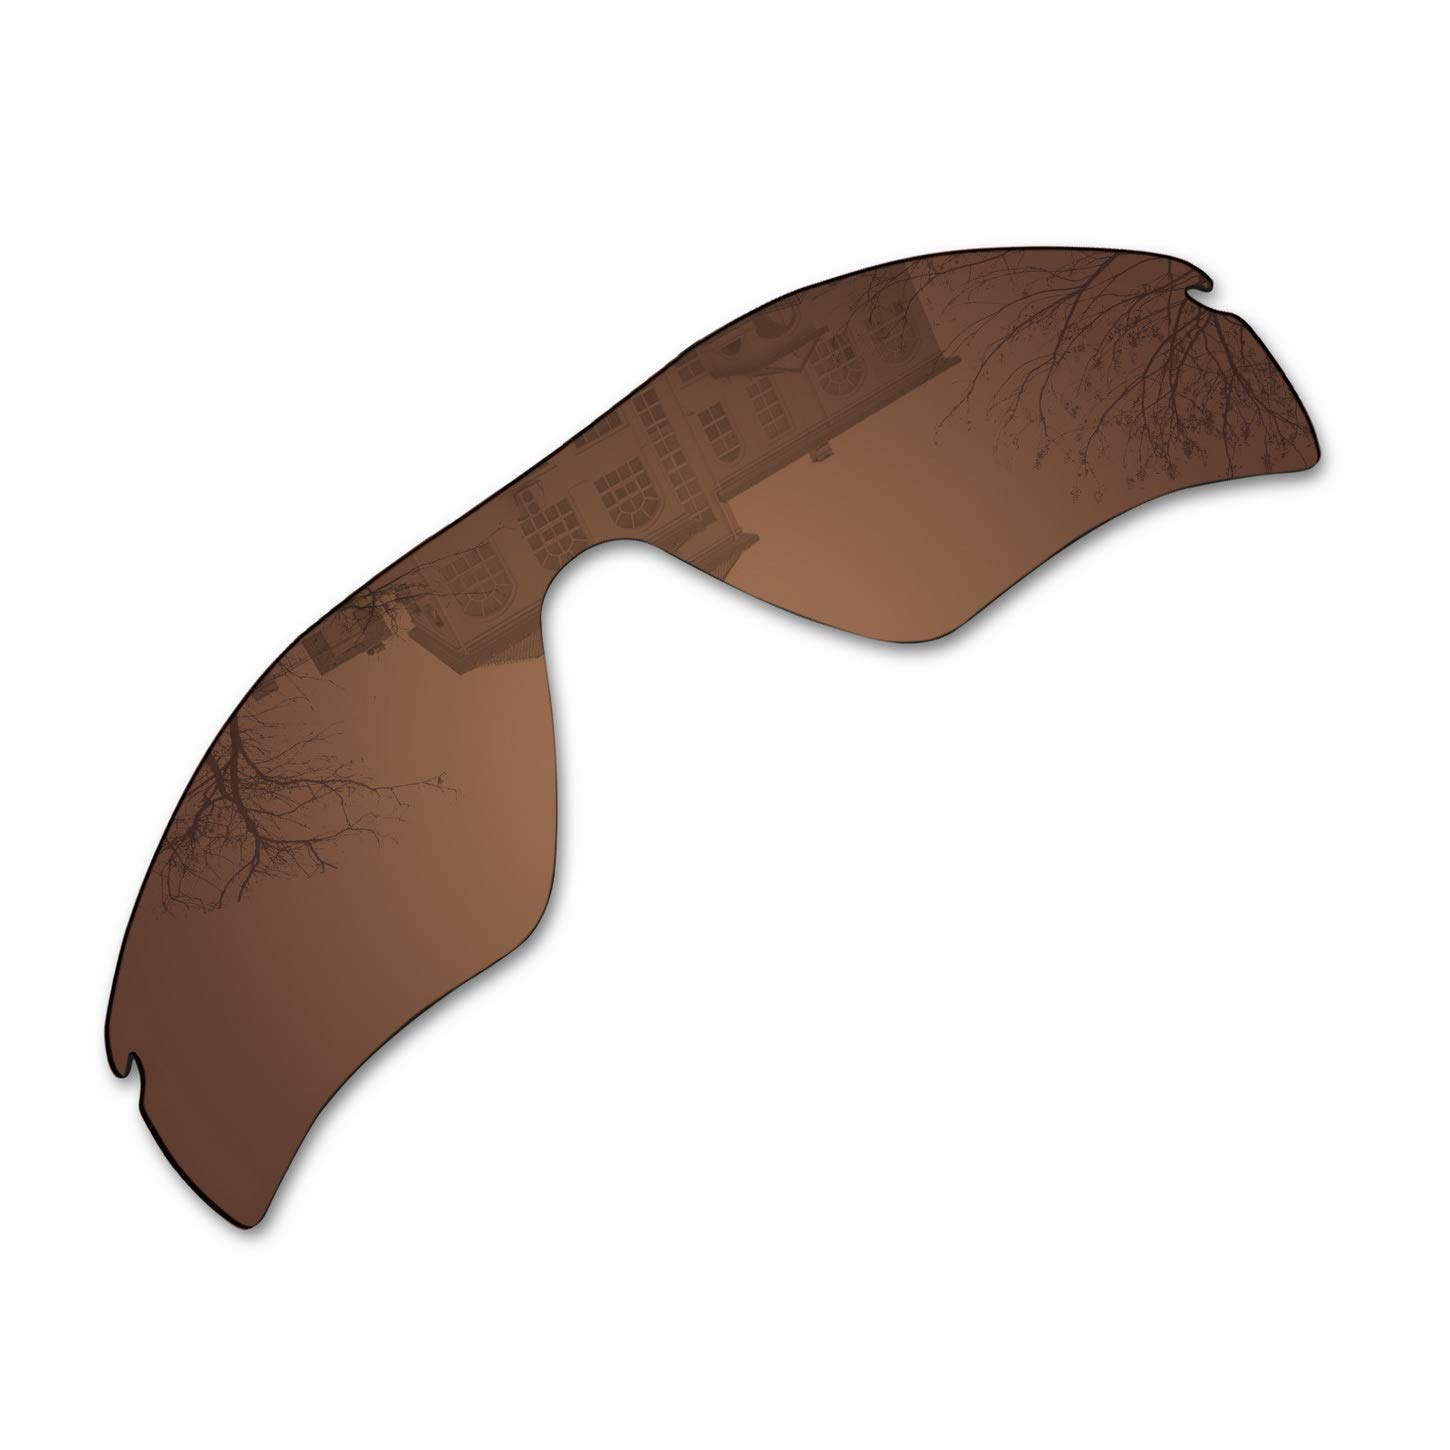 Millersawp Radar Path Replacement Lenses Compatiable with Oakley Sunglass-Bronze Brown by Millersawp